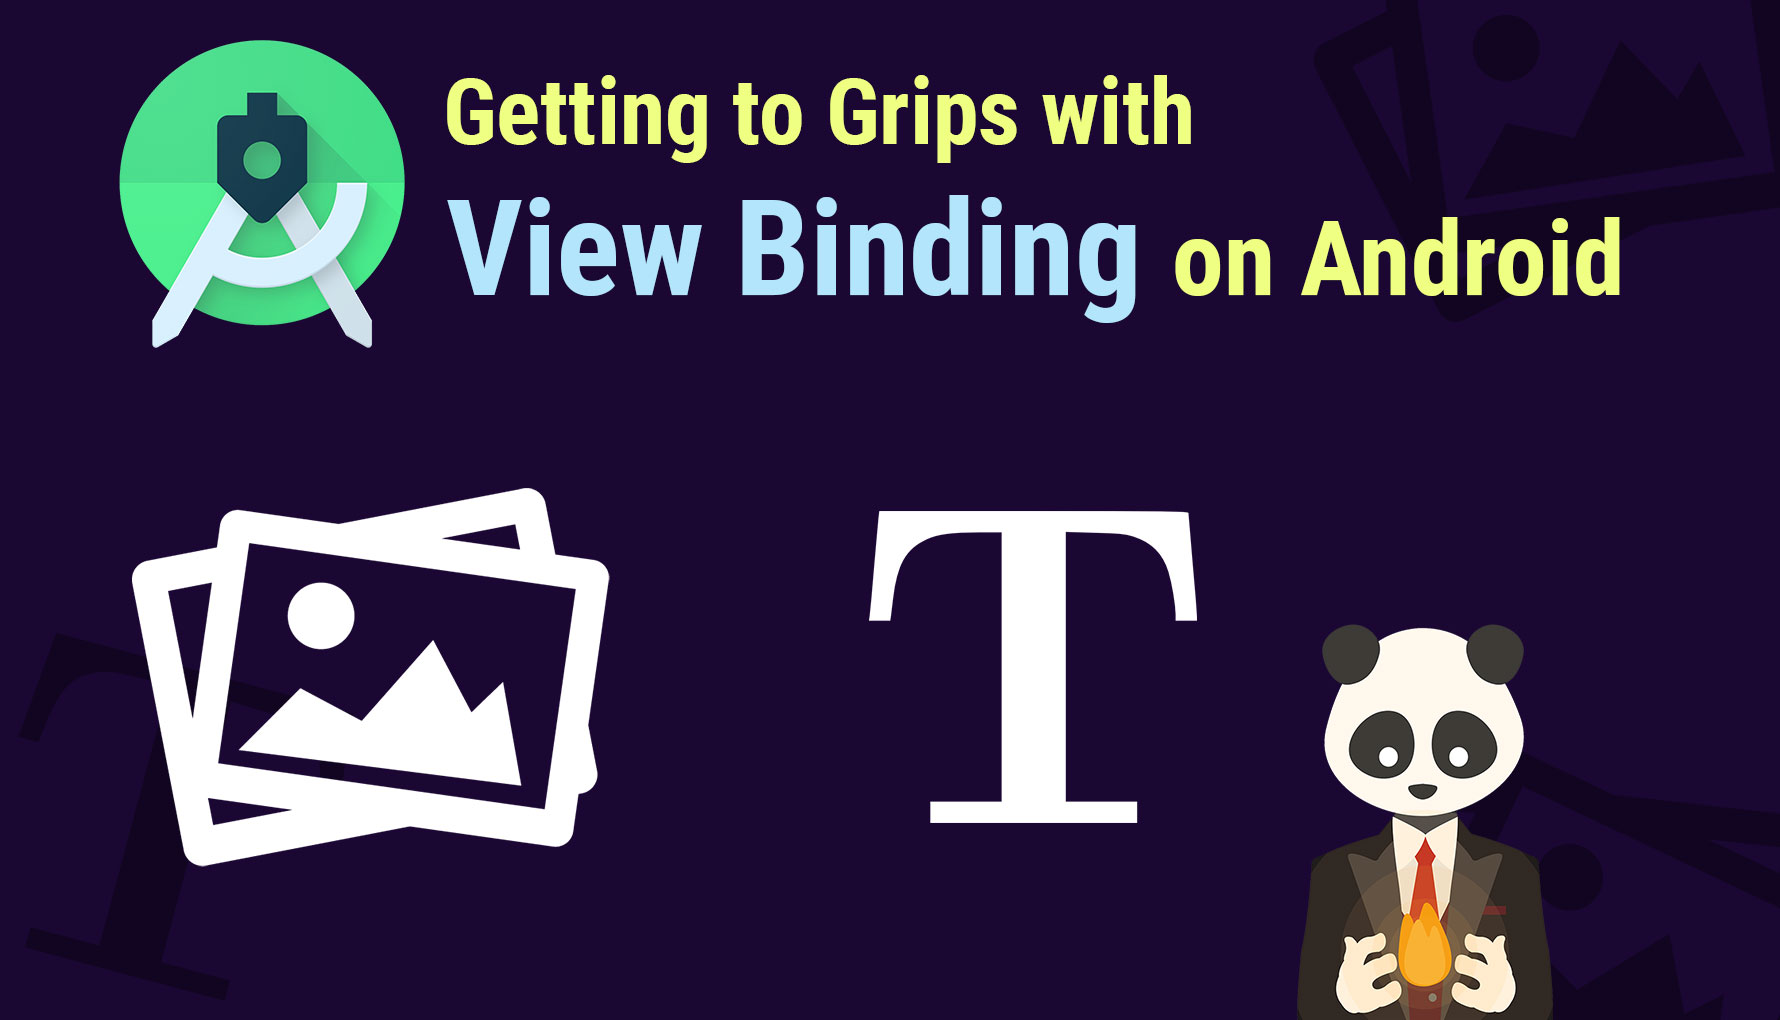 Getting to Grips with View Binding on Android